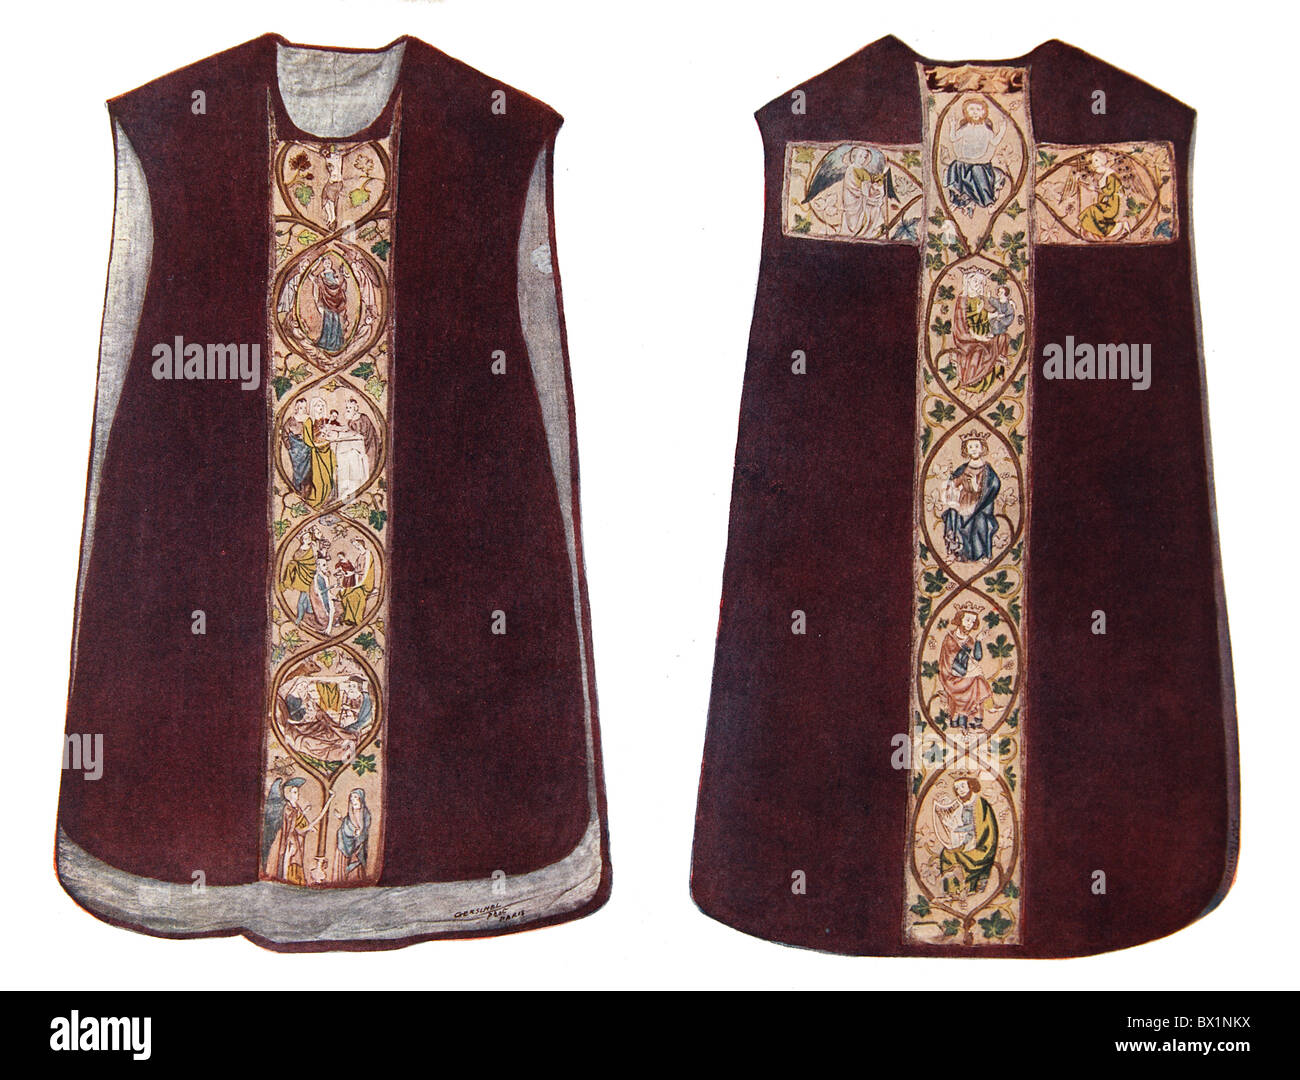 An English Chasuble or Vestment worn by a priest during Mass, circa 1300 - Stock Image